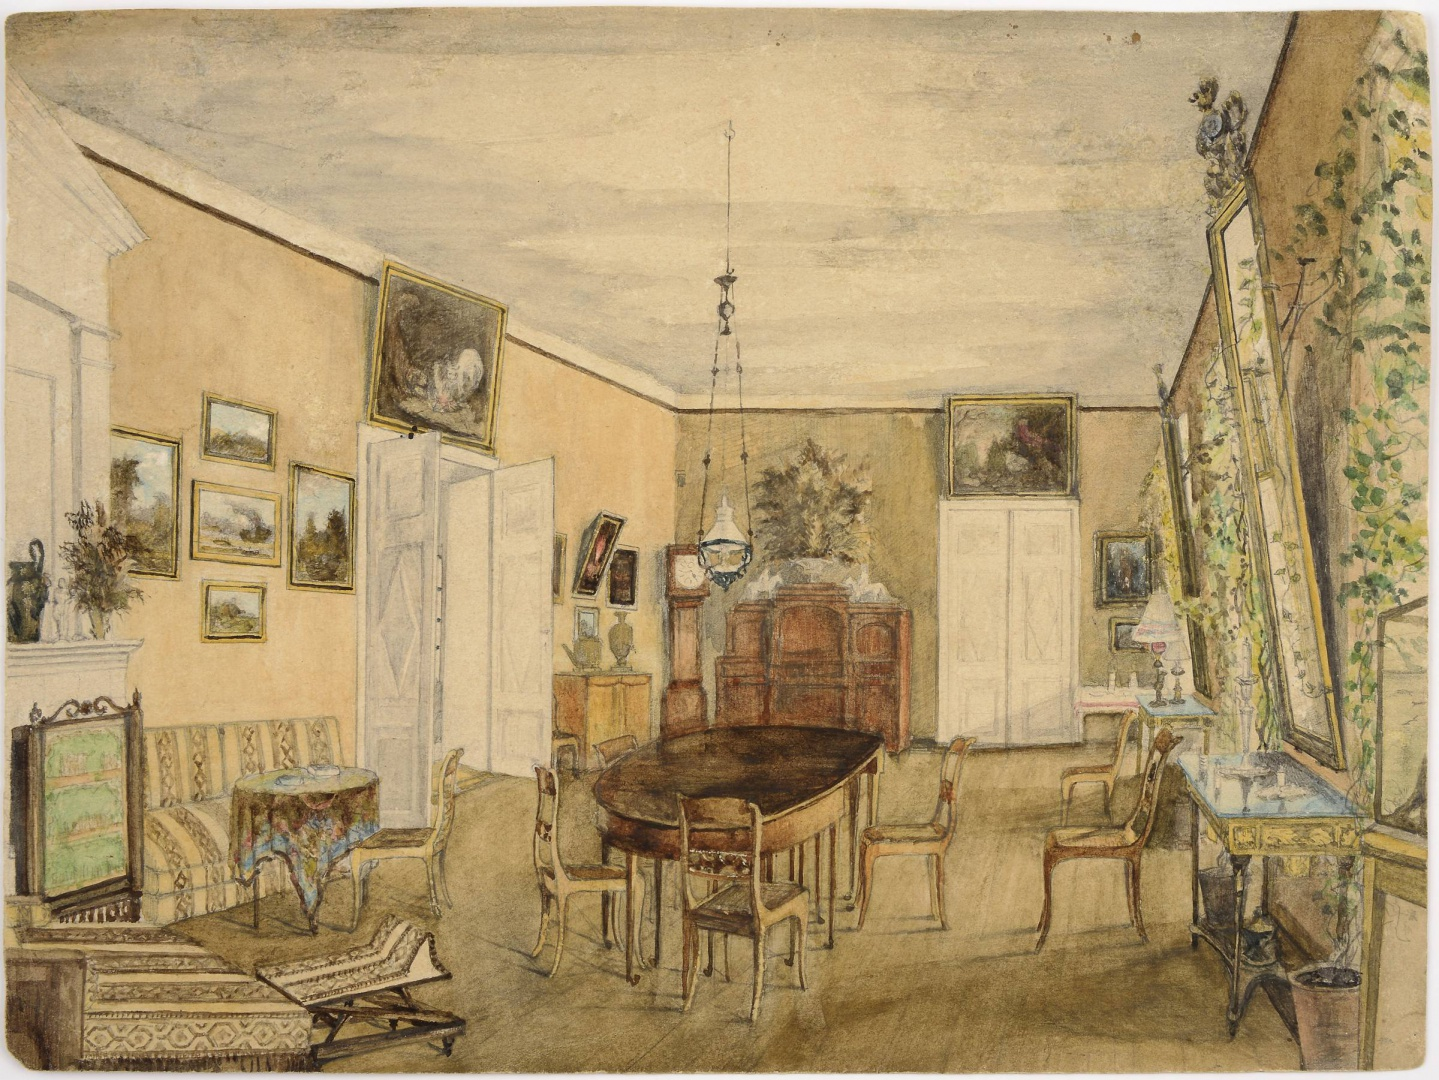 ill 6. Watercolour by Anna von Krüdener depicting the dining room of Uue-Suislepa Manor. VM 9893:2. Conserved in 2015 by Tea Shumanov (Kanut). Photo – Kanut.